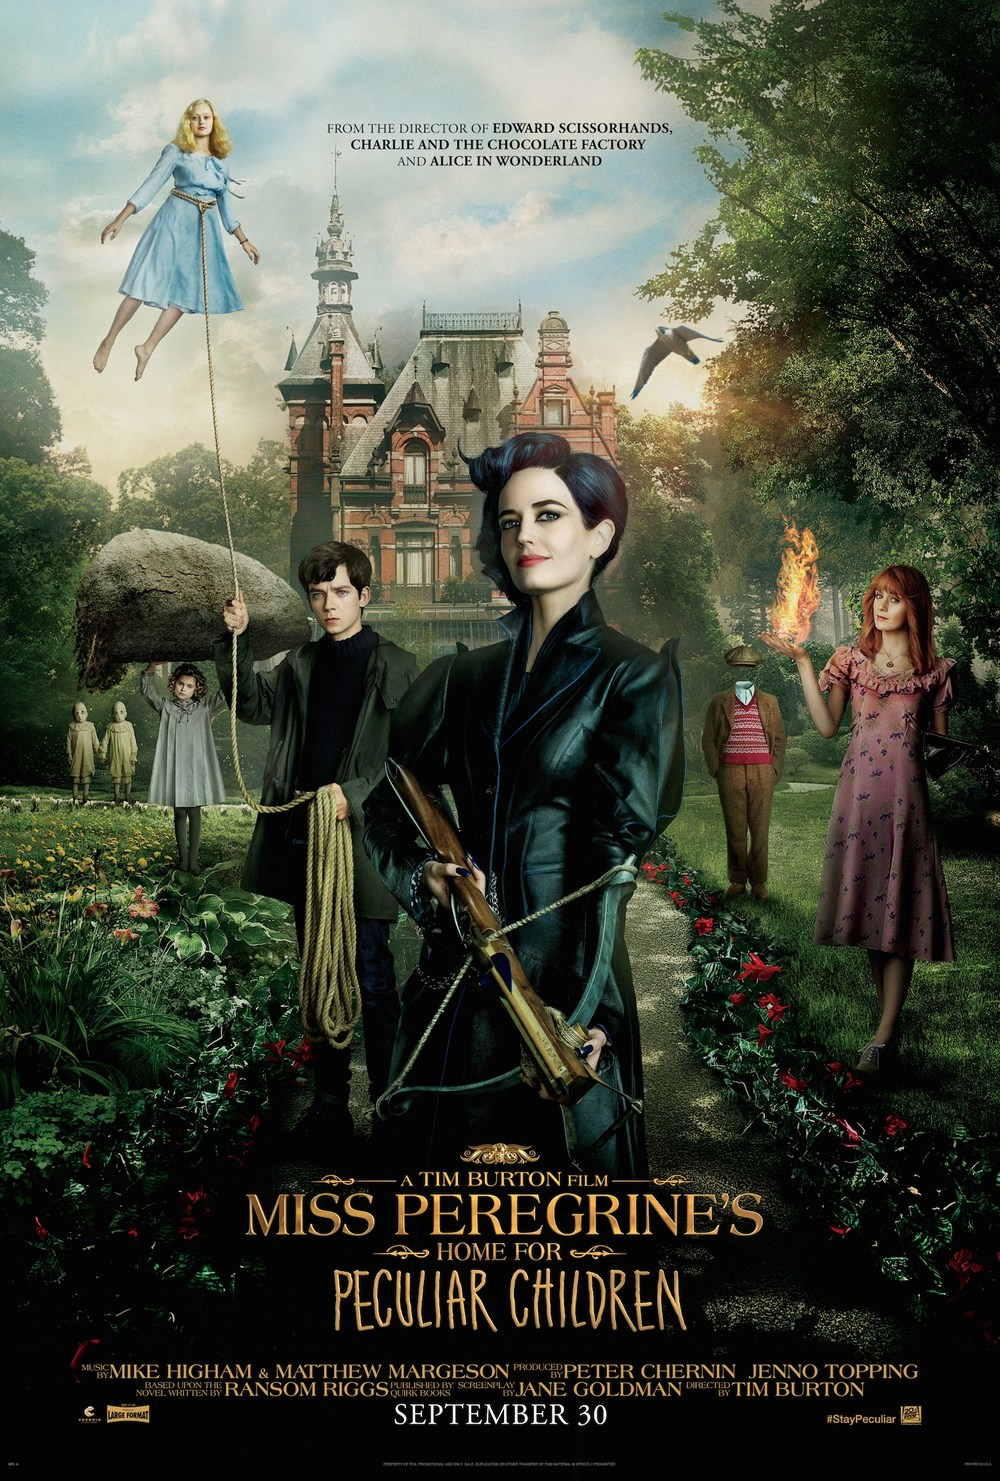 incredible-trailer-for-tim-burtons-miss-peregrines-home-of-peculiar-children